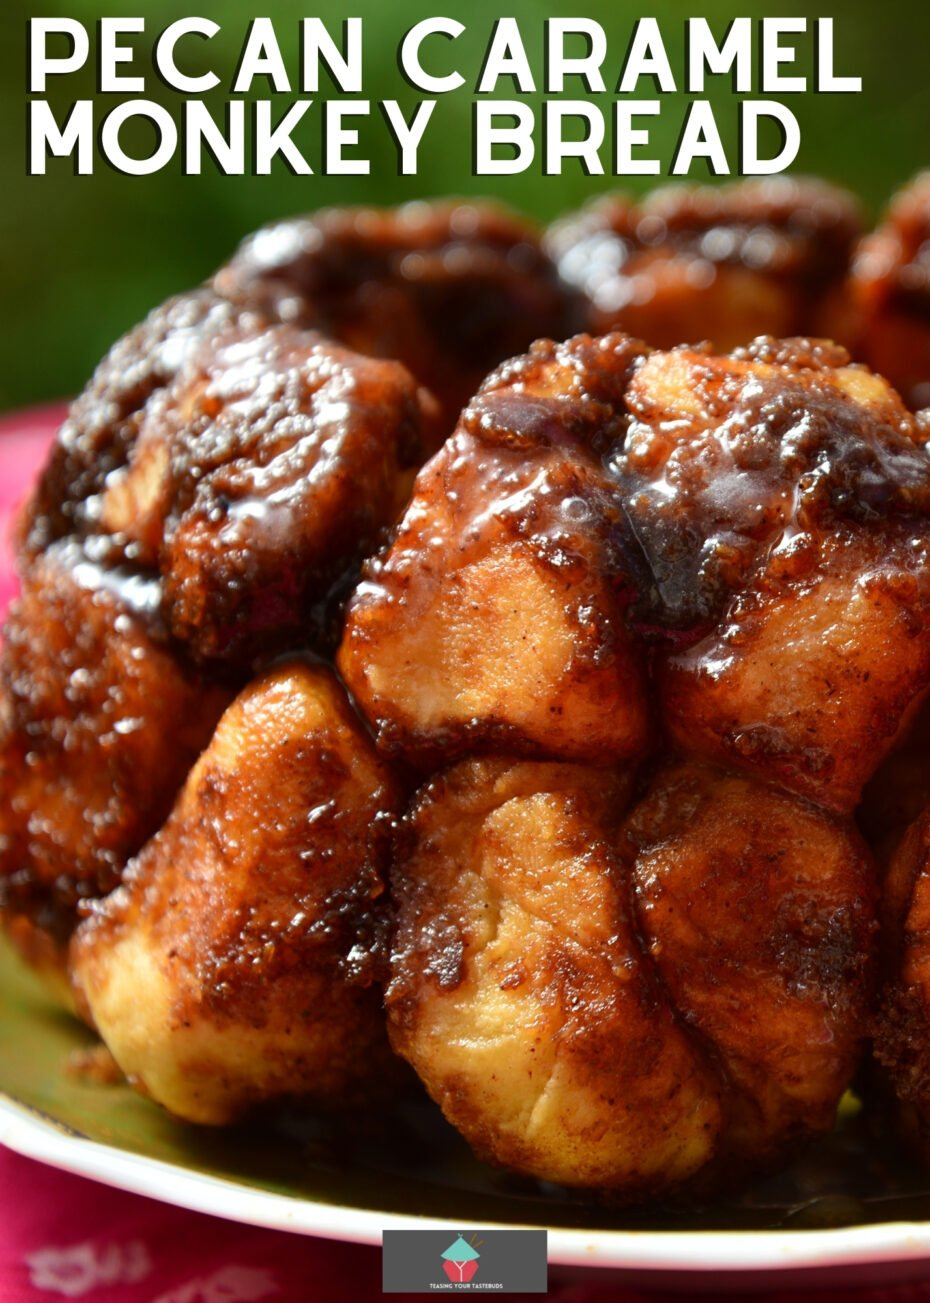 Pecan Caramel Monkey Bread, Easy recipe for how to make it. Sticky caramel coated pieces of bread with a sprinkling of chocolate chips & pecan nuts baked in a bundt pan. A great pull apart bread recipe using store bought biscuits.